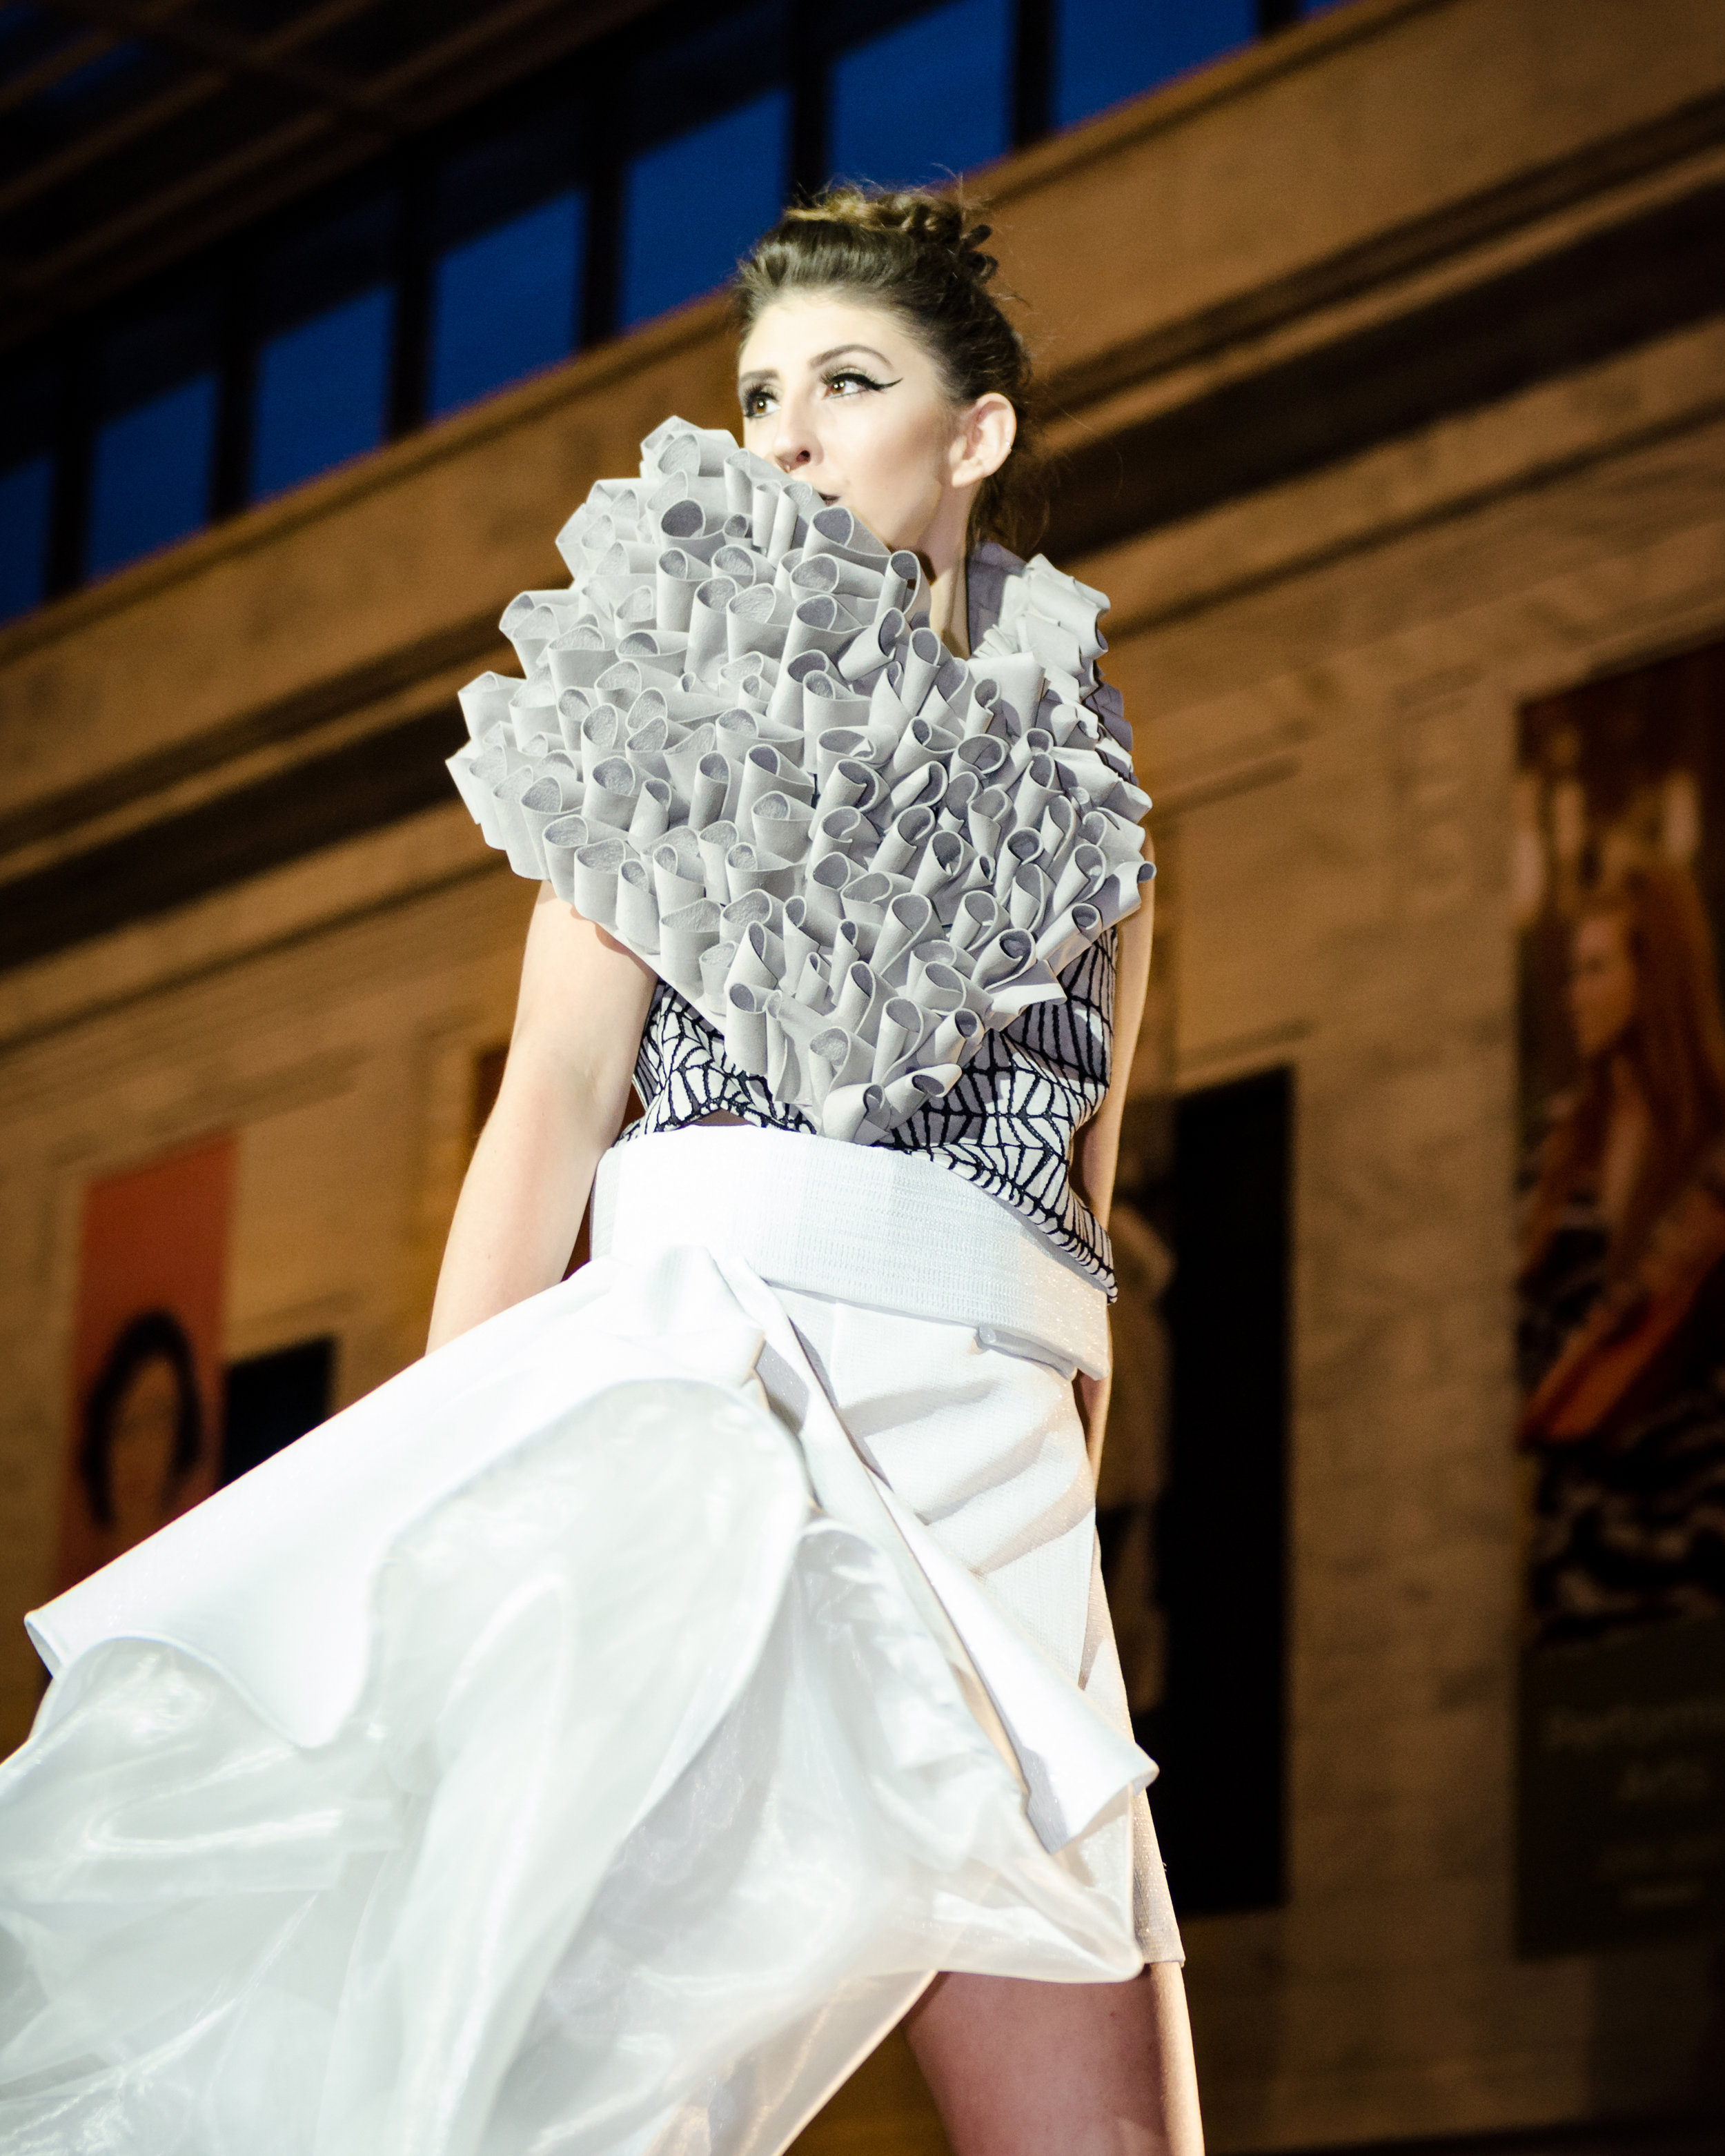 IIDA Product Runway  - From the 2017 IIDA presents Product Runway. This is a fashion show the IIDA puts on every other year in the Cleveland, OH area.